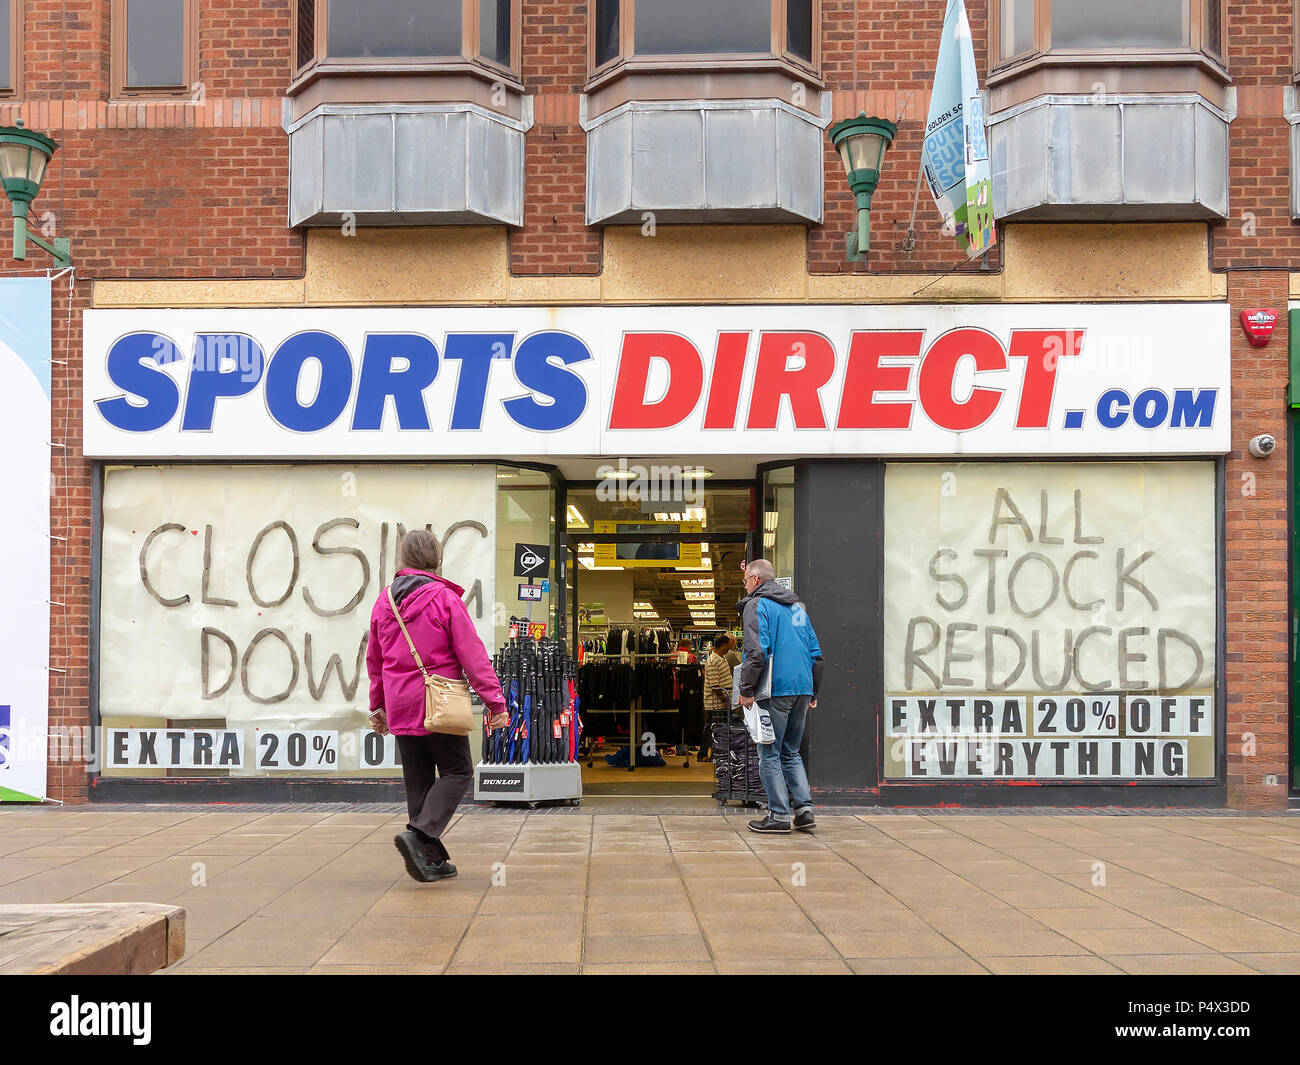 23 May 2018 - Closing Down signs in the windows of the Sports Direct shop in the Old Fishmarket area of Warrington Town Centre, next to The Golden Squ - Stock Image